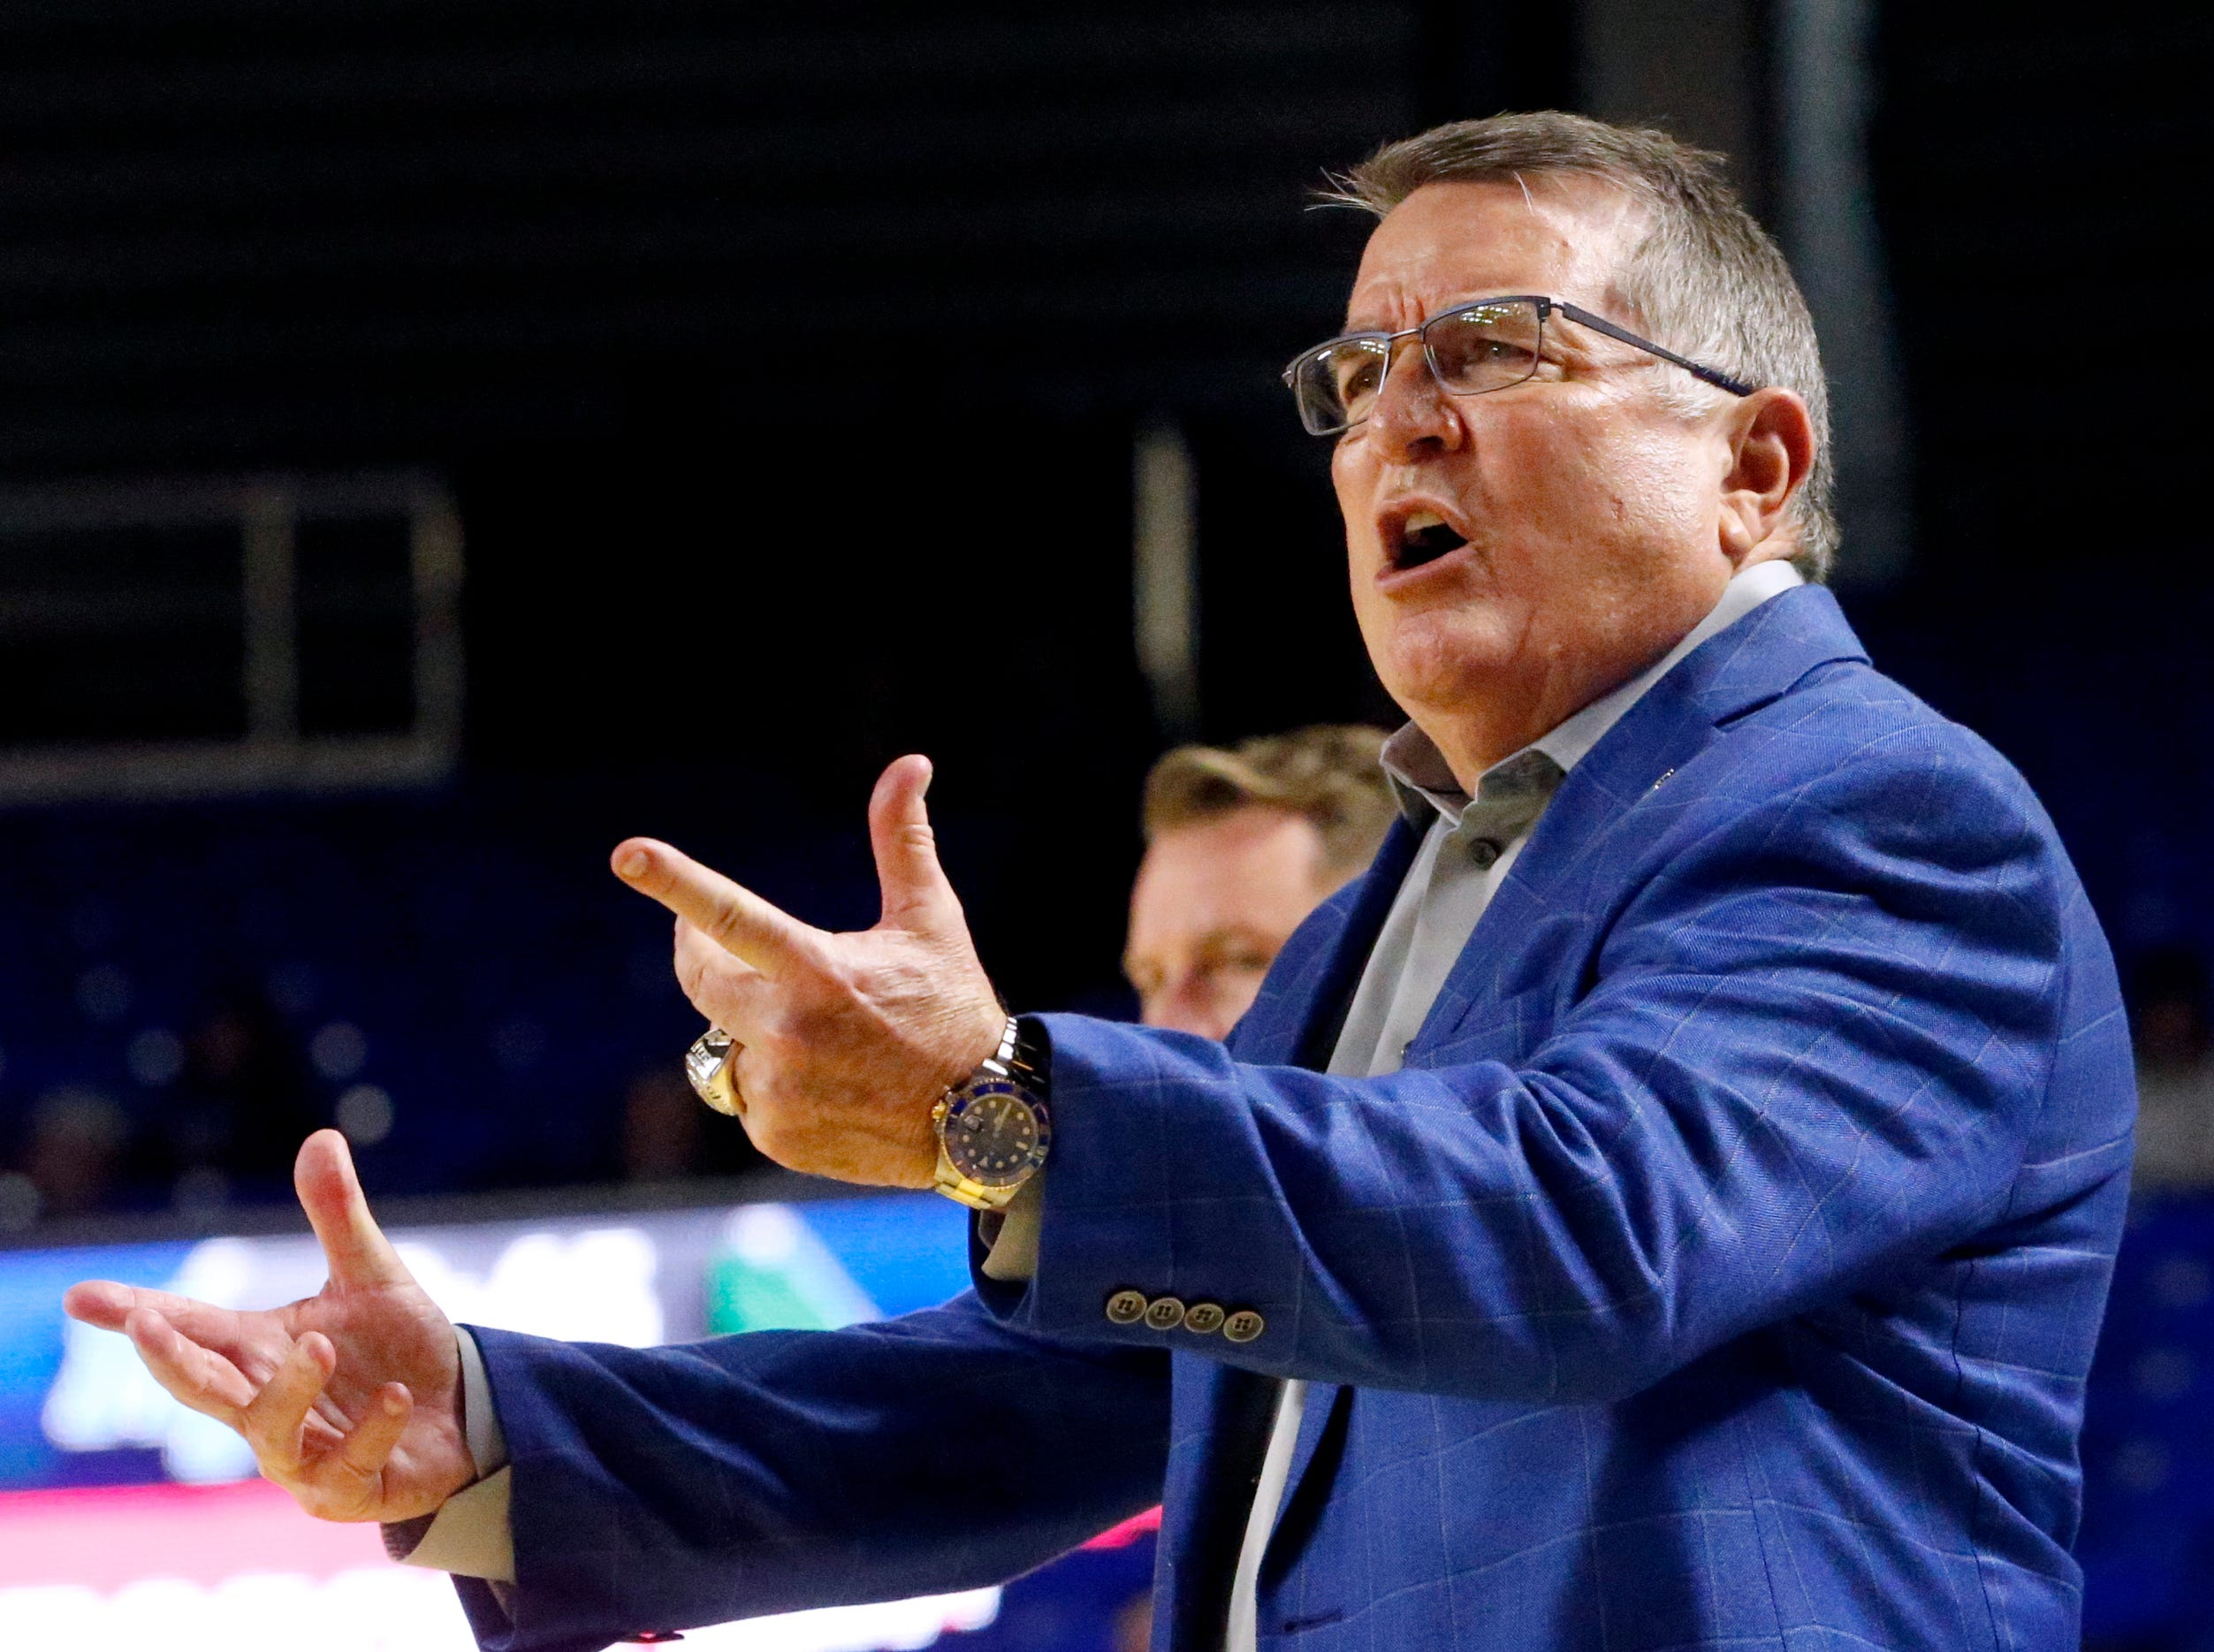 MTSU's head coach Rick Insell  on the sidelines during the game against North Texas on Saturday Jan. 26, 2019.